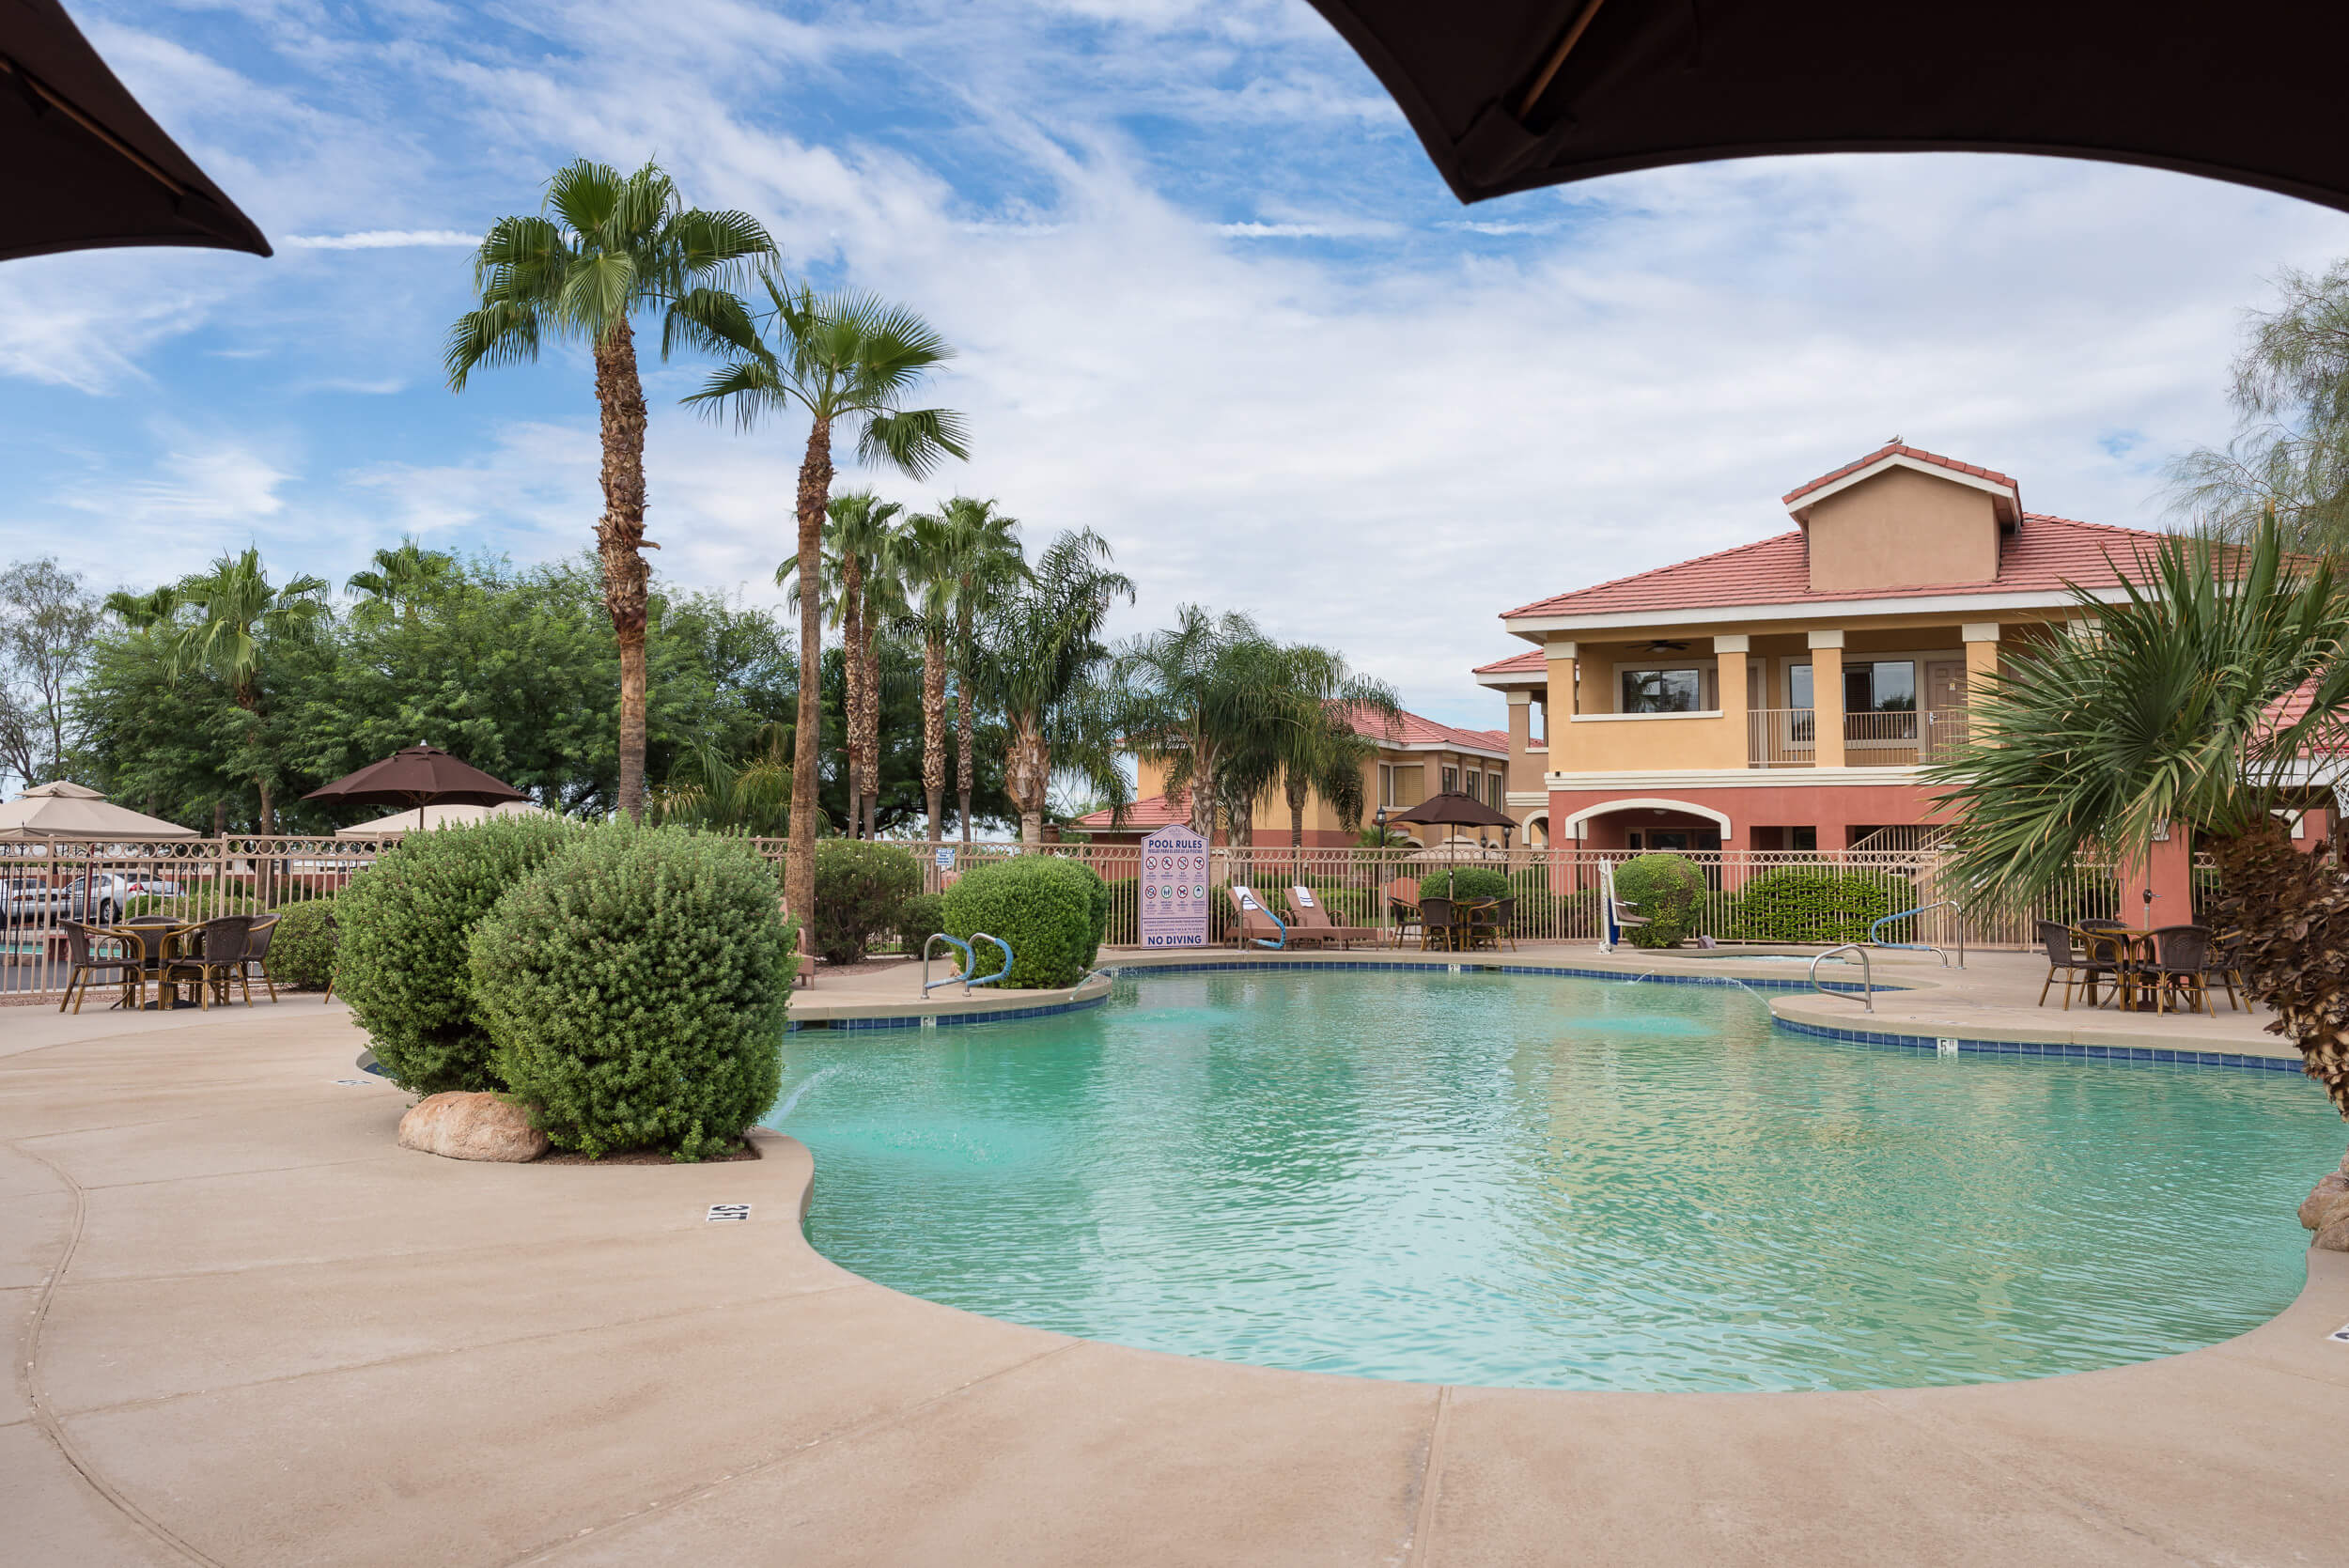 Heated outdoor pool surrounded by tables with umbrellas | Westgate Painted Mountain Golf Resort